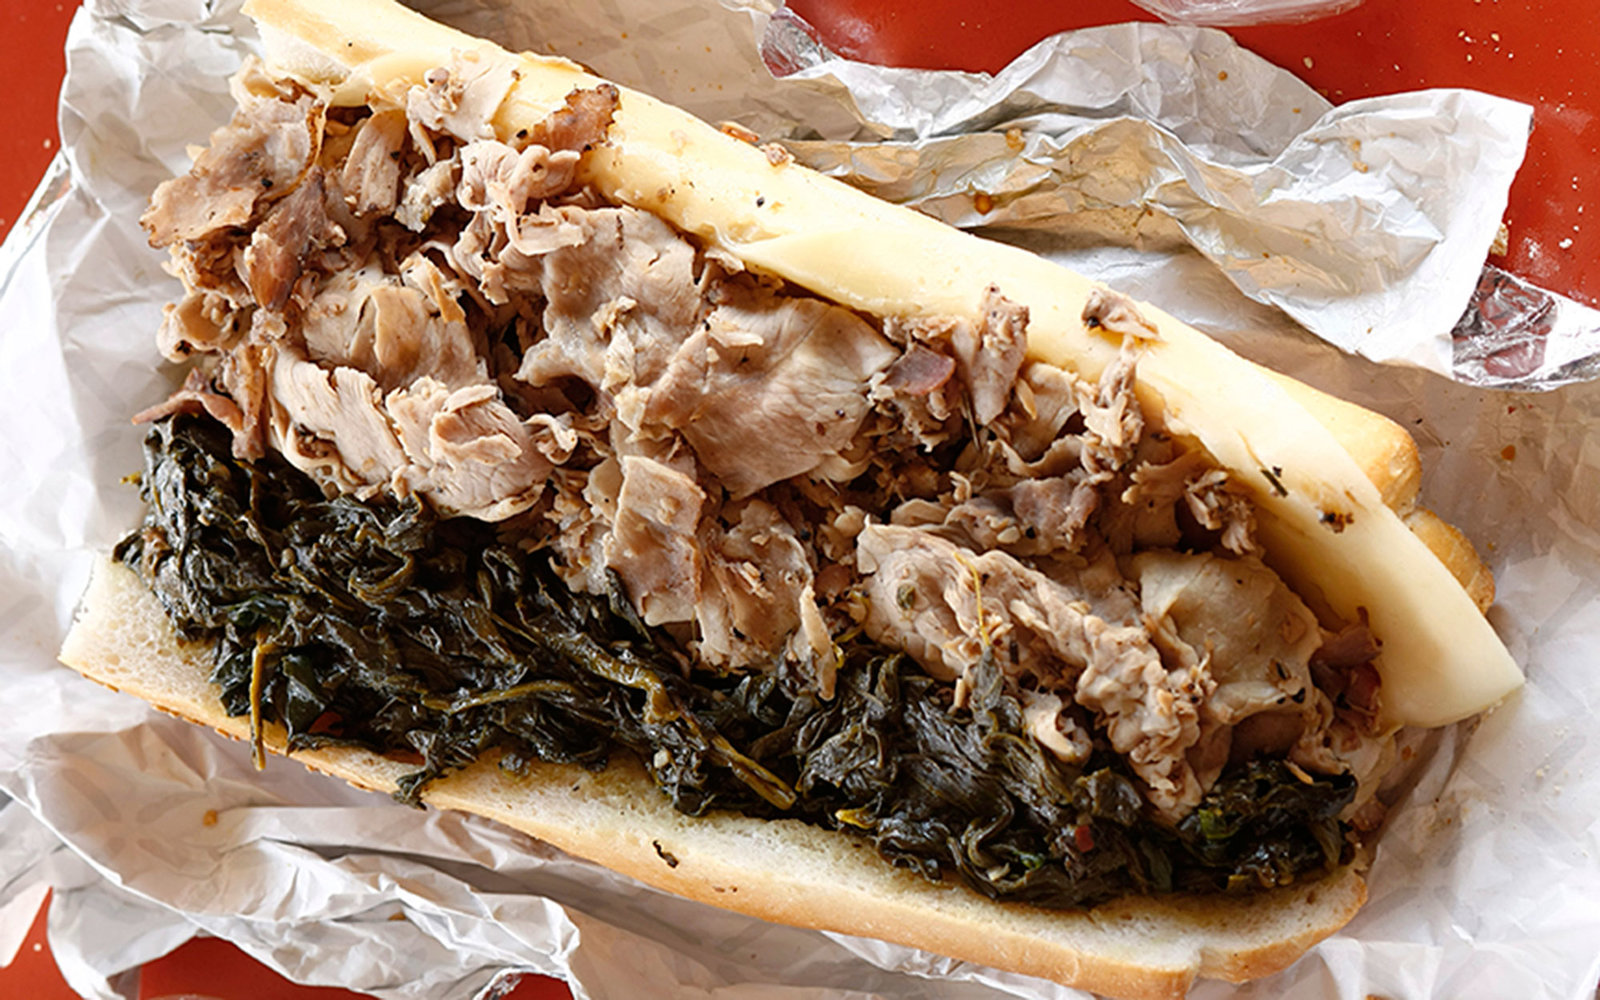 Cheesesteaks and hoagies may get all of the attention, but roast pork sandwiches are also big business in Philly. It's the specialty of the house at John's Roast Pork in South Philly, which often serves it topped with broccoli rabe.